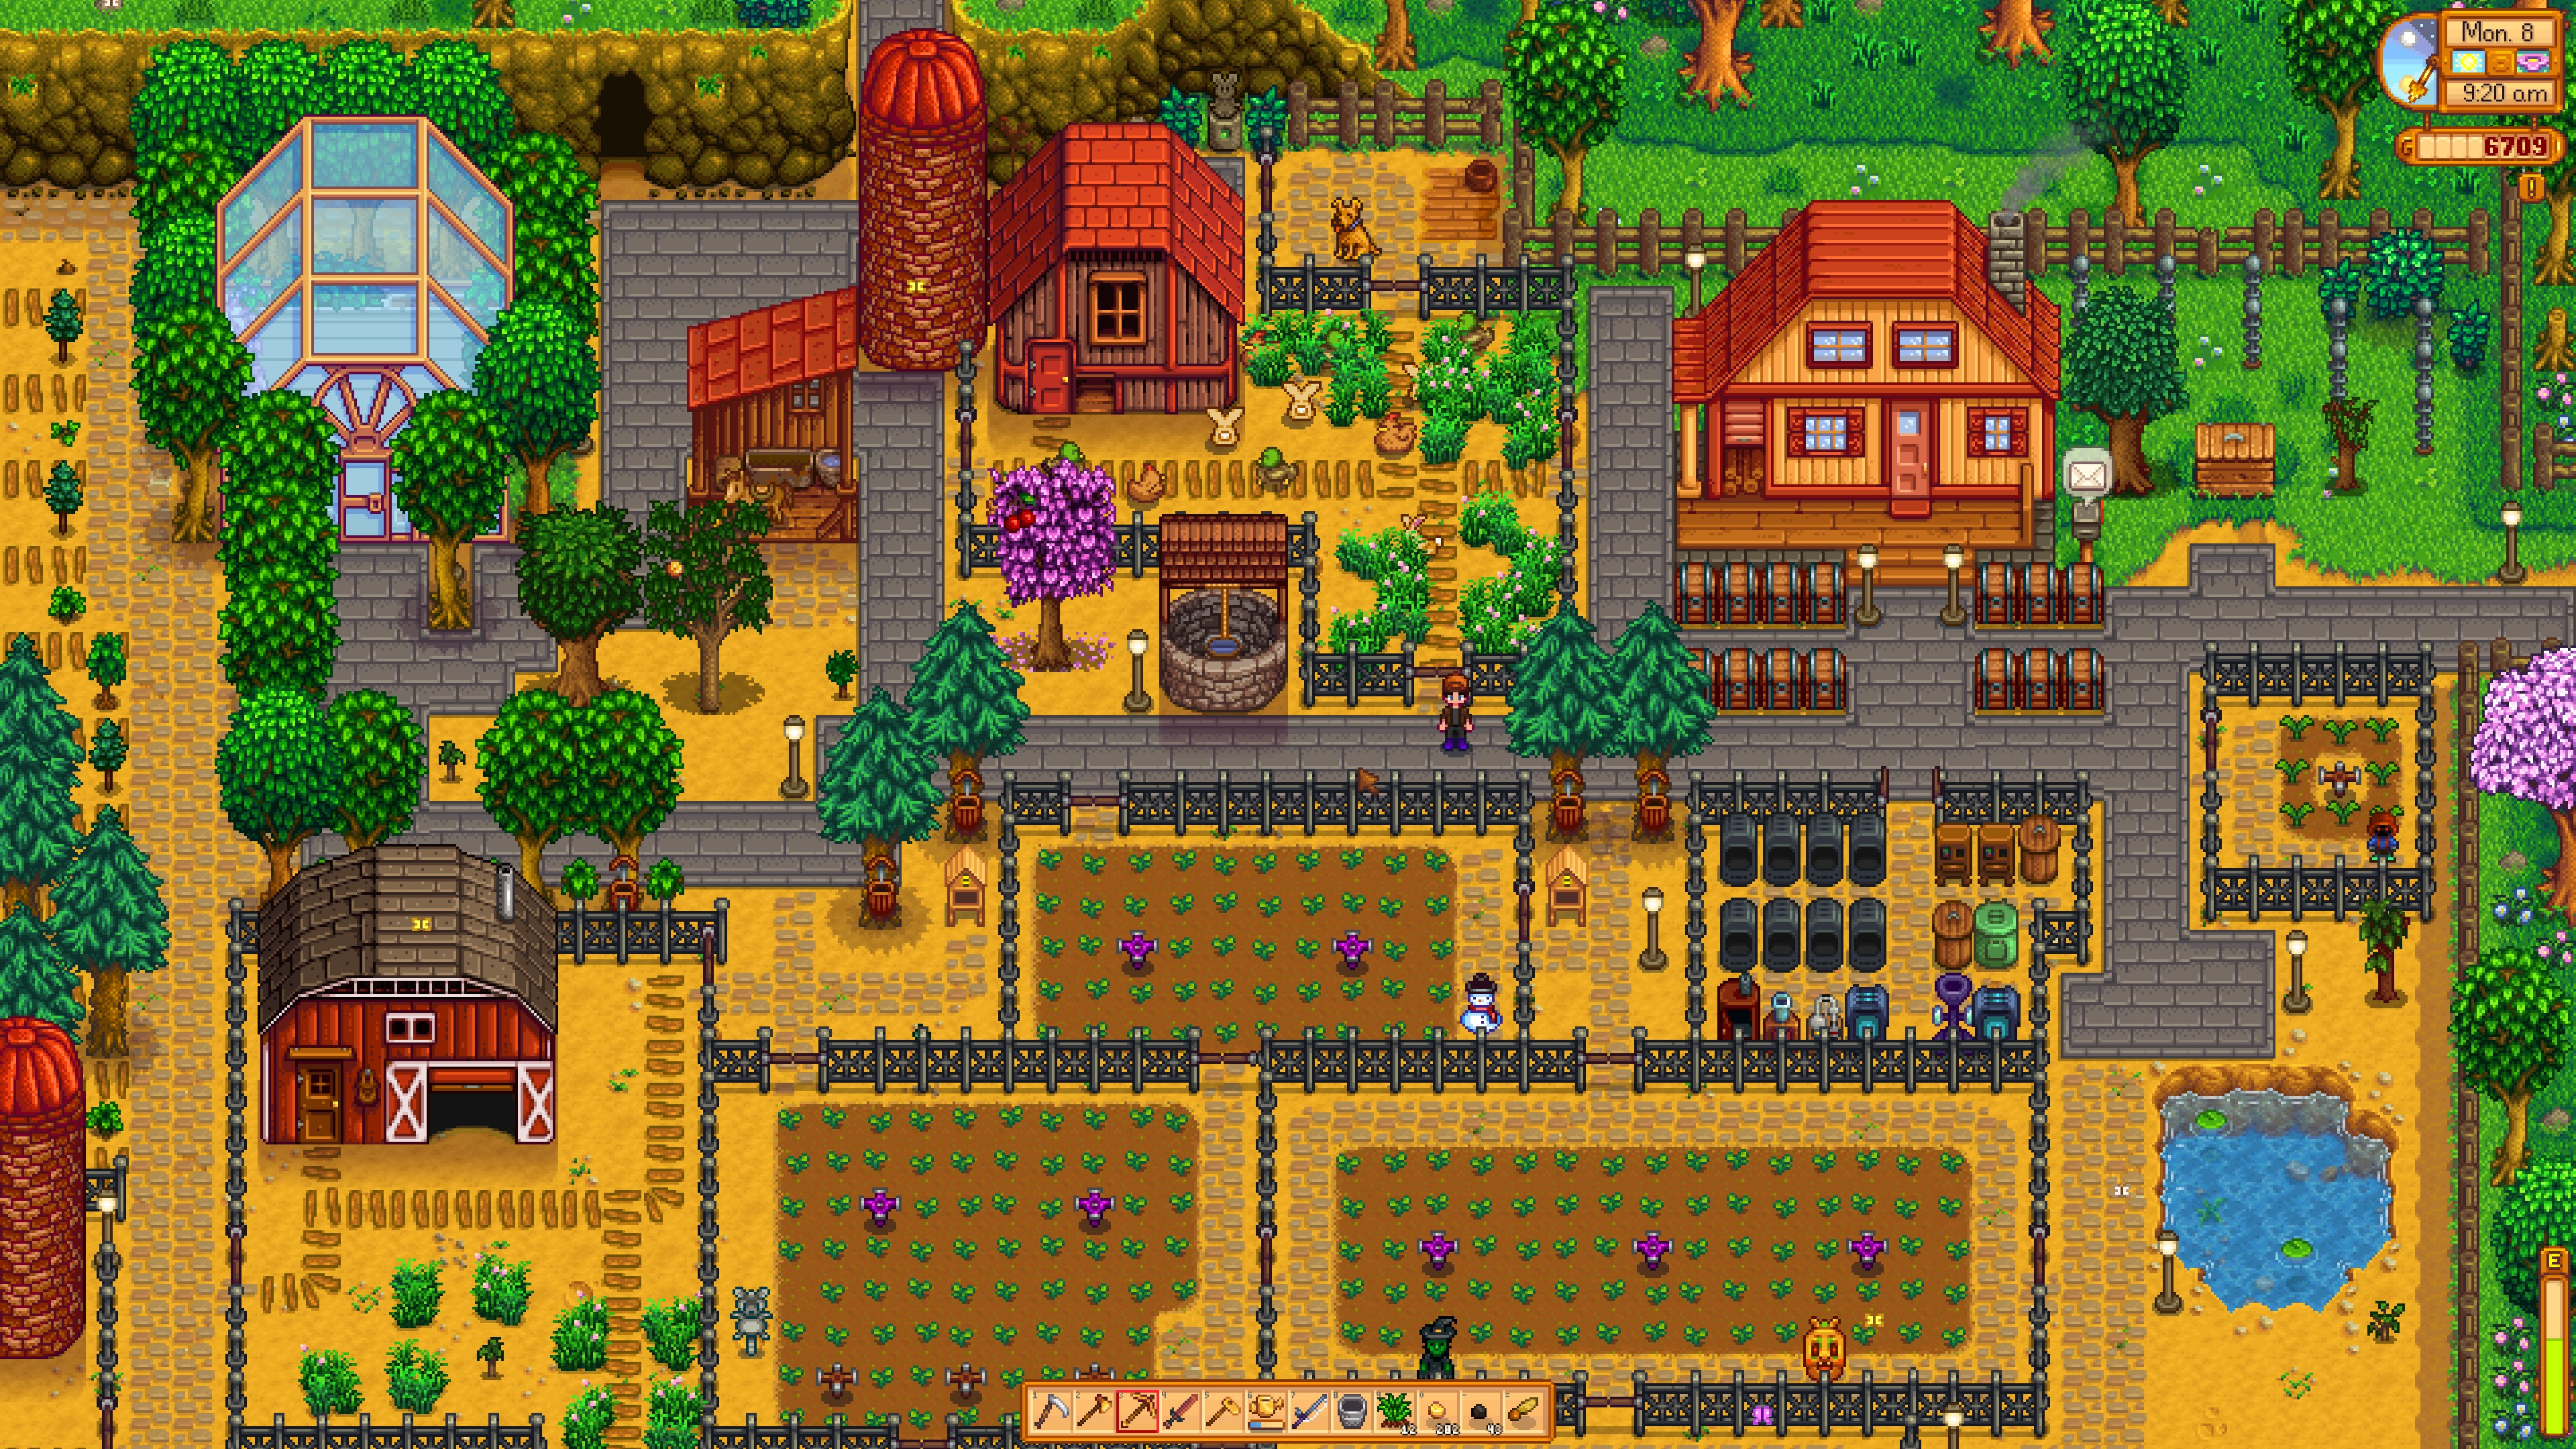 House design stardew valley - Nintendo Switch Will Be The First Console To Support Multiplayer In Stardew Valley